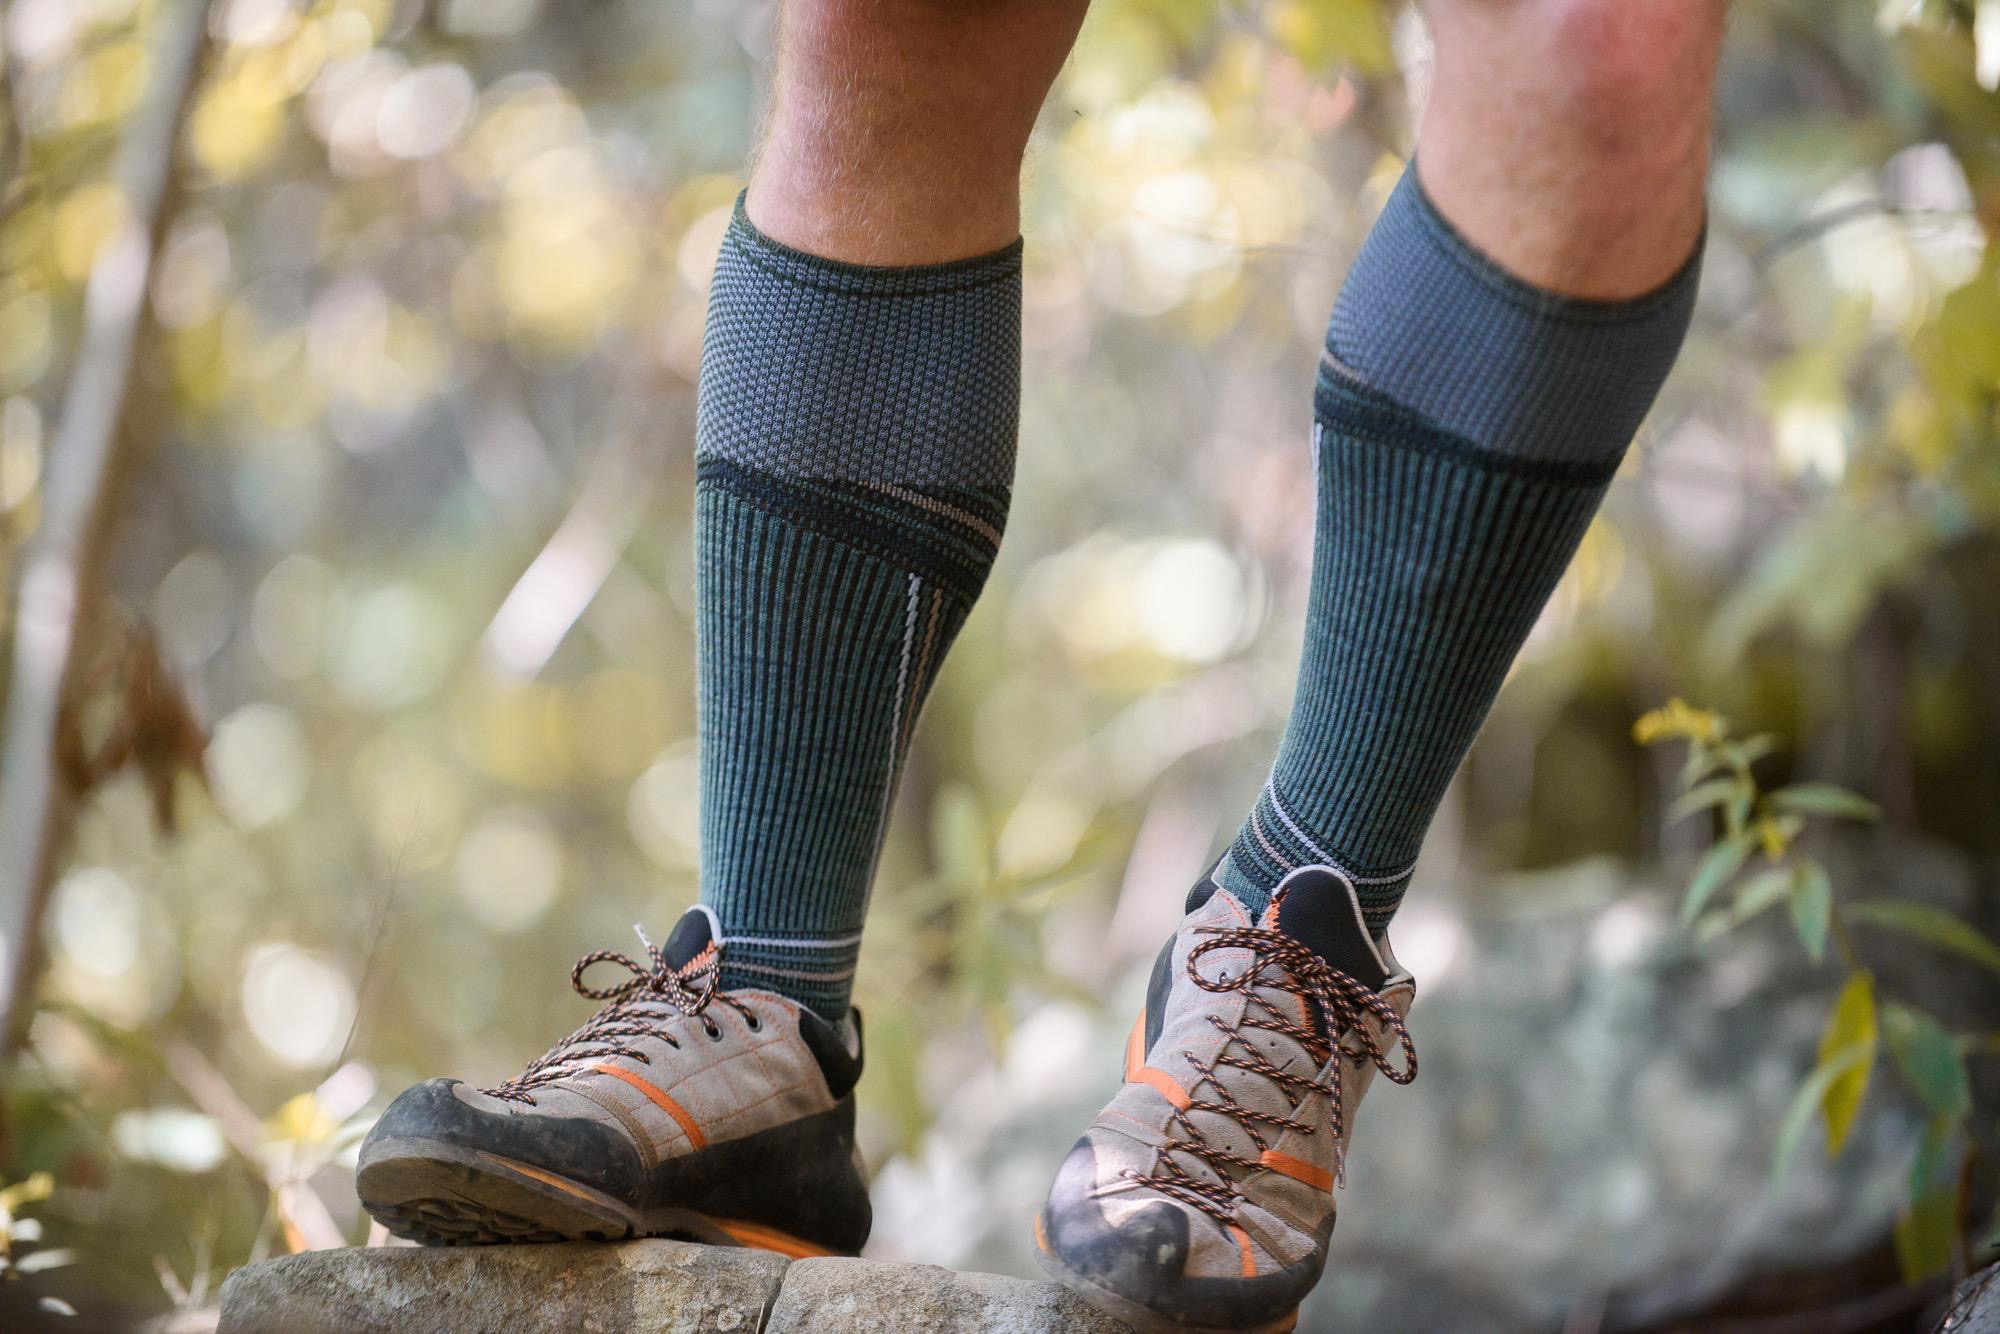 074-Sockwell-Fall2017-DotsonCommercial 2